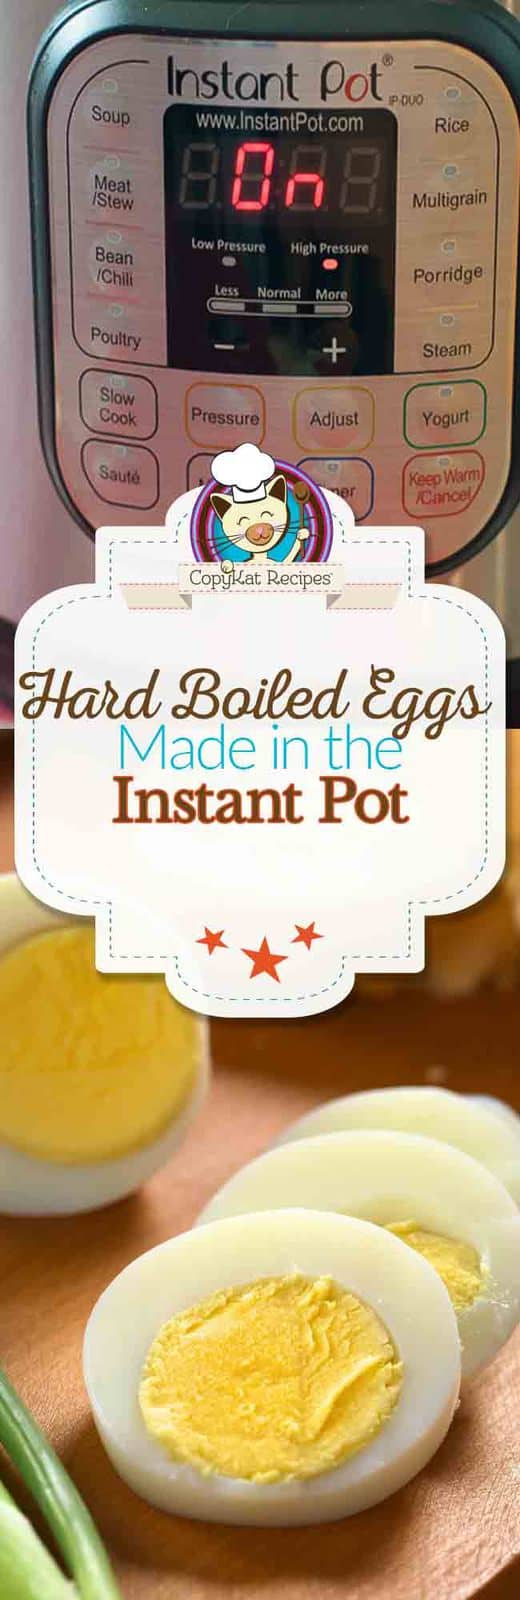 You can make hard boiled eggs in an  Instant Pot in no time. #instantpot #hardboiled #eggs